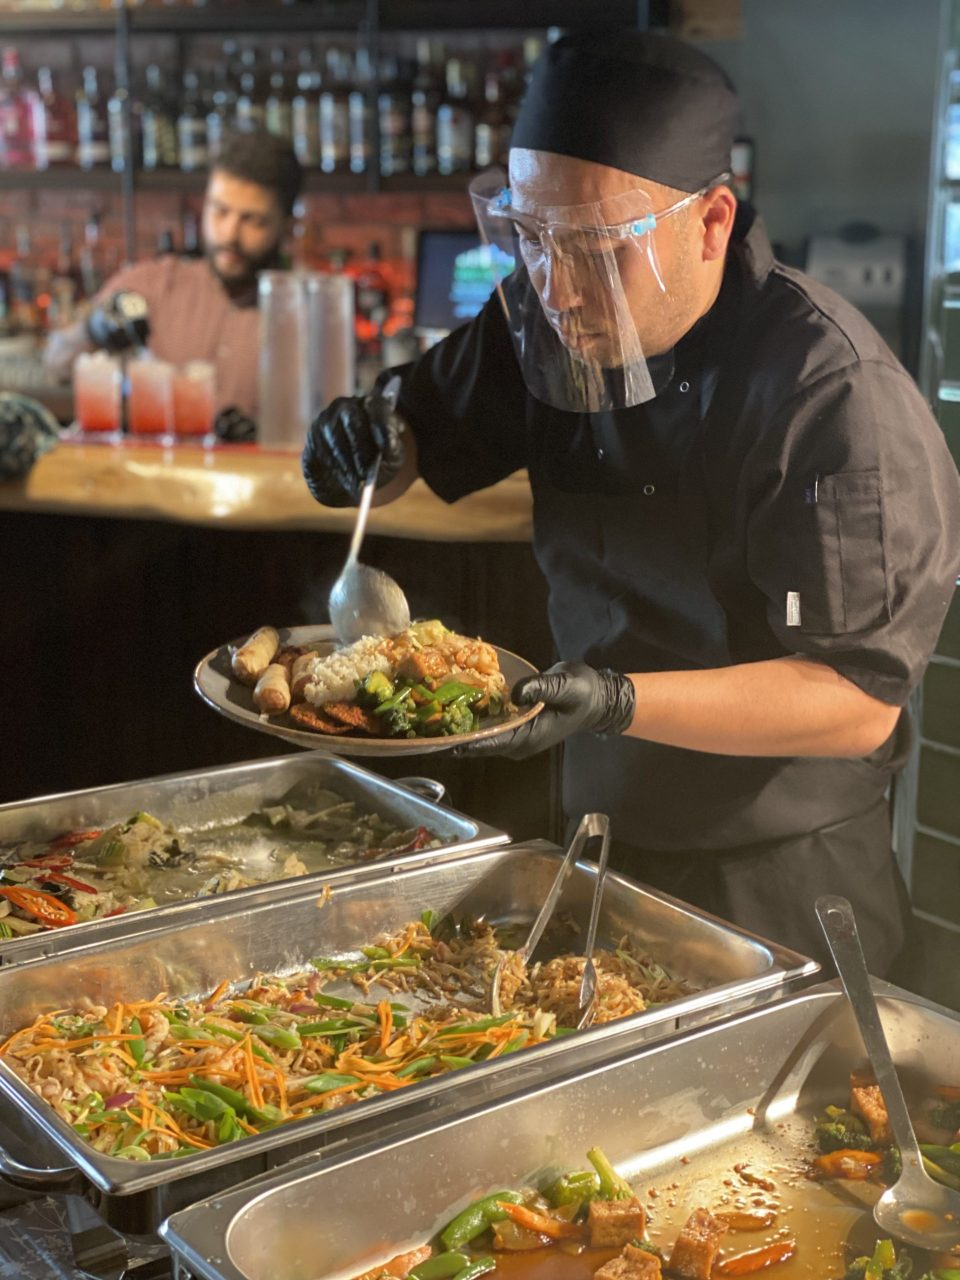 Thai restaurant owner serves food with PPE